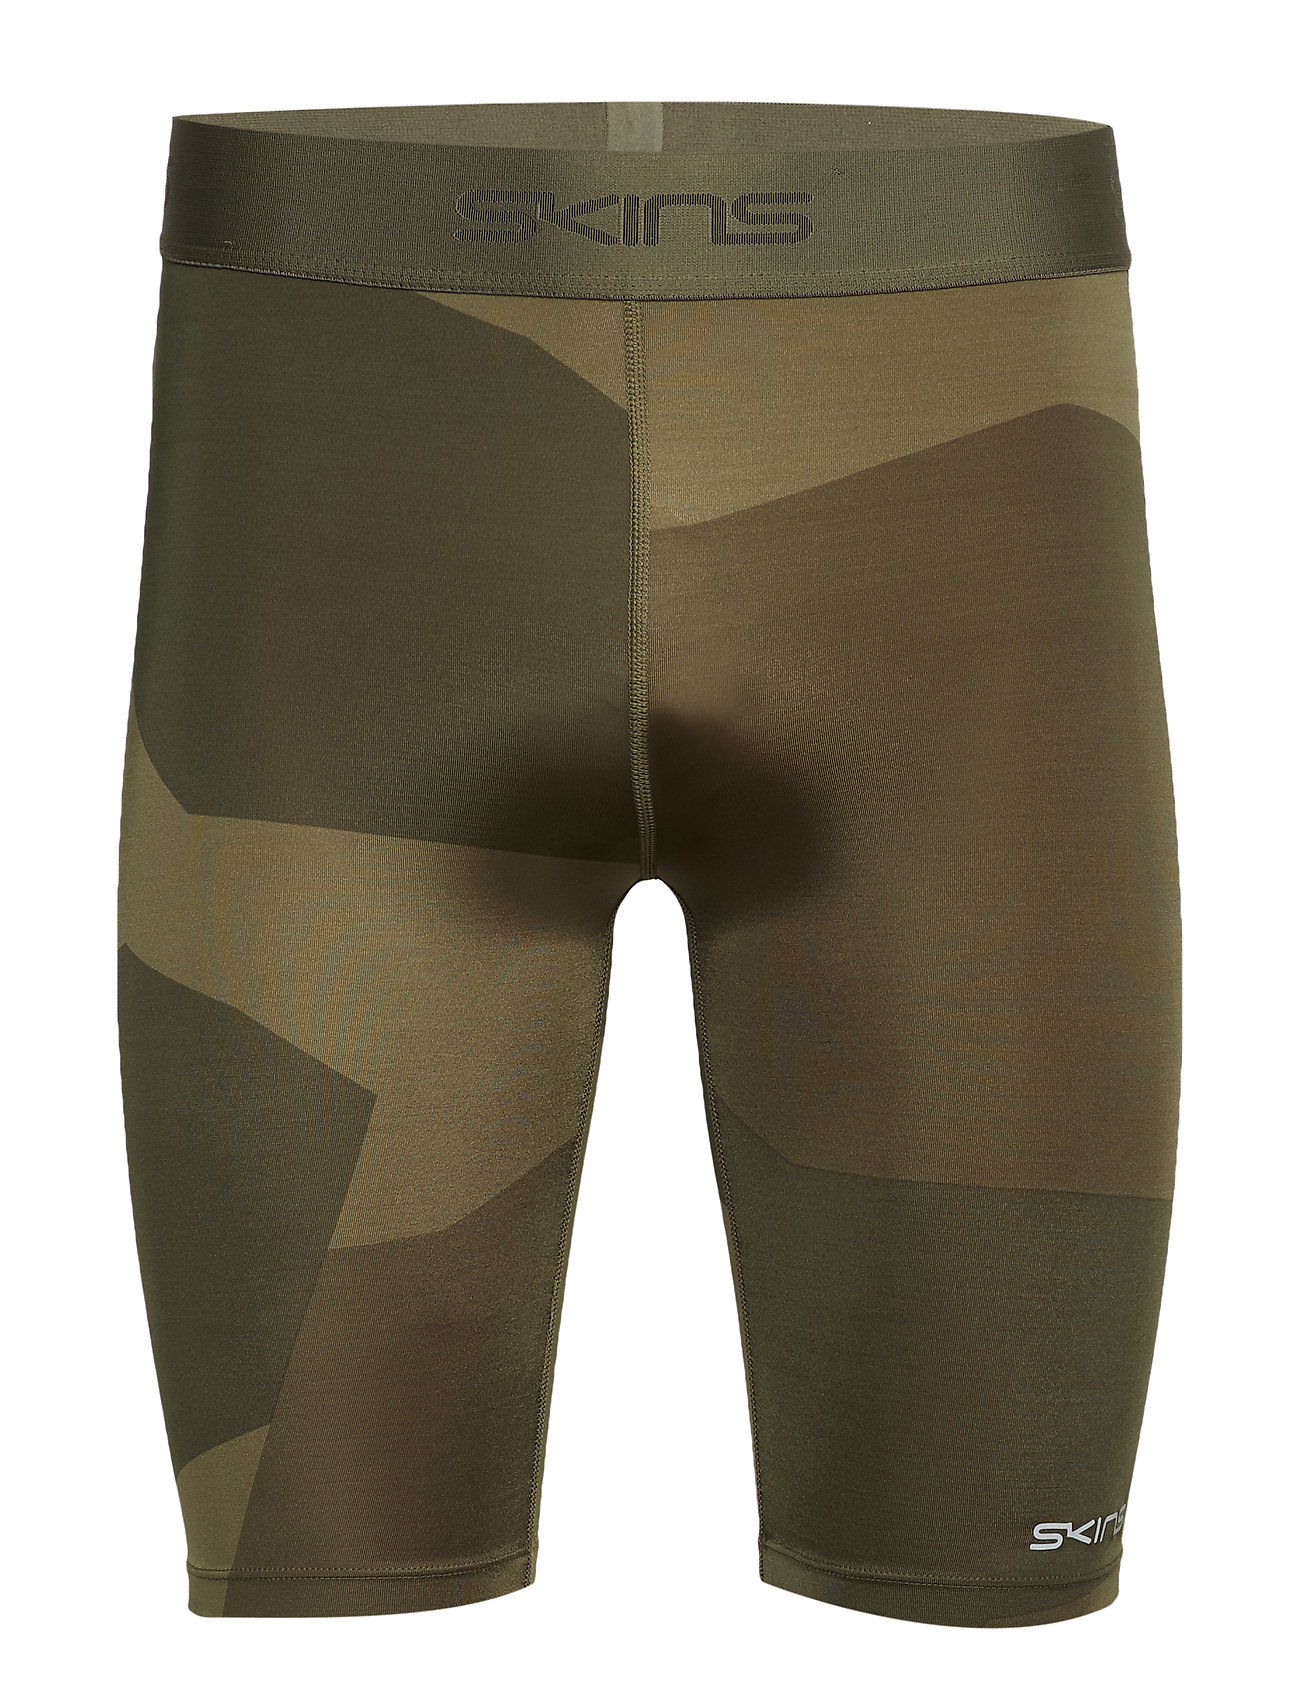 Skins DNAmic Primary Mens 1/2 Tights - DECONST CAMO UTILITY